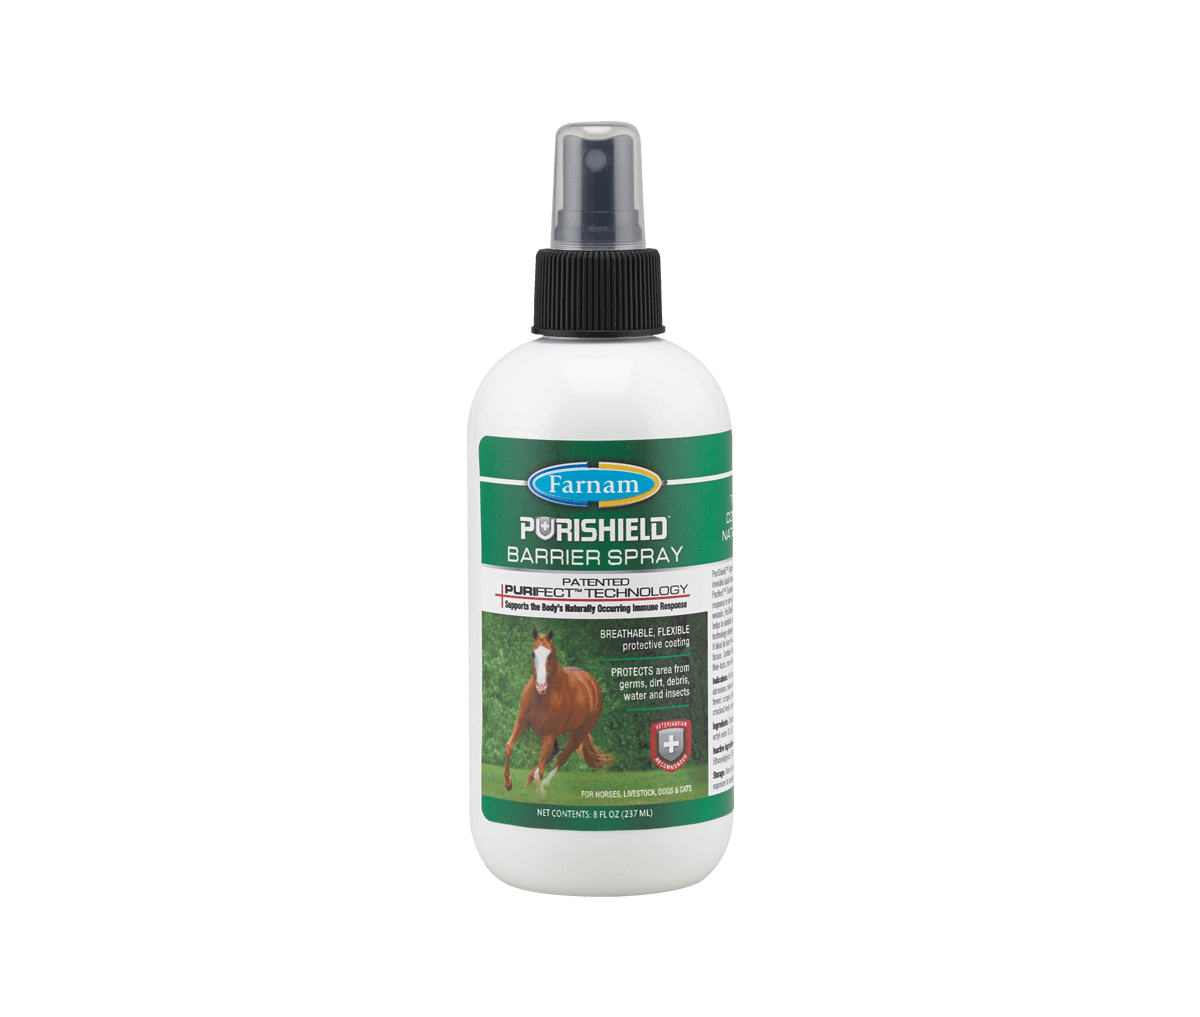 purishield barrier spray wound care farnam #30216